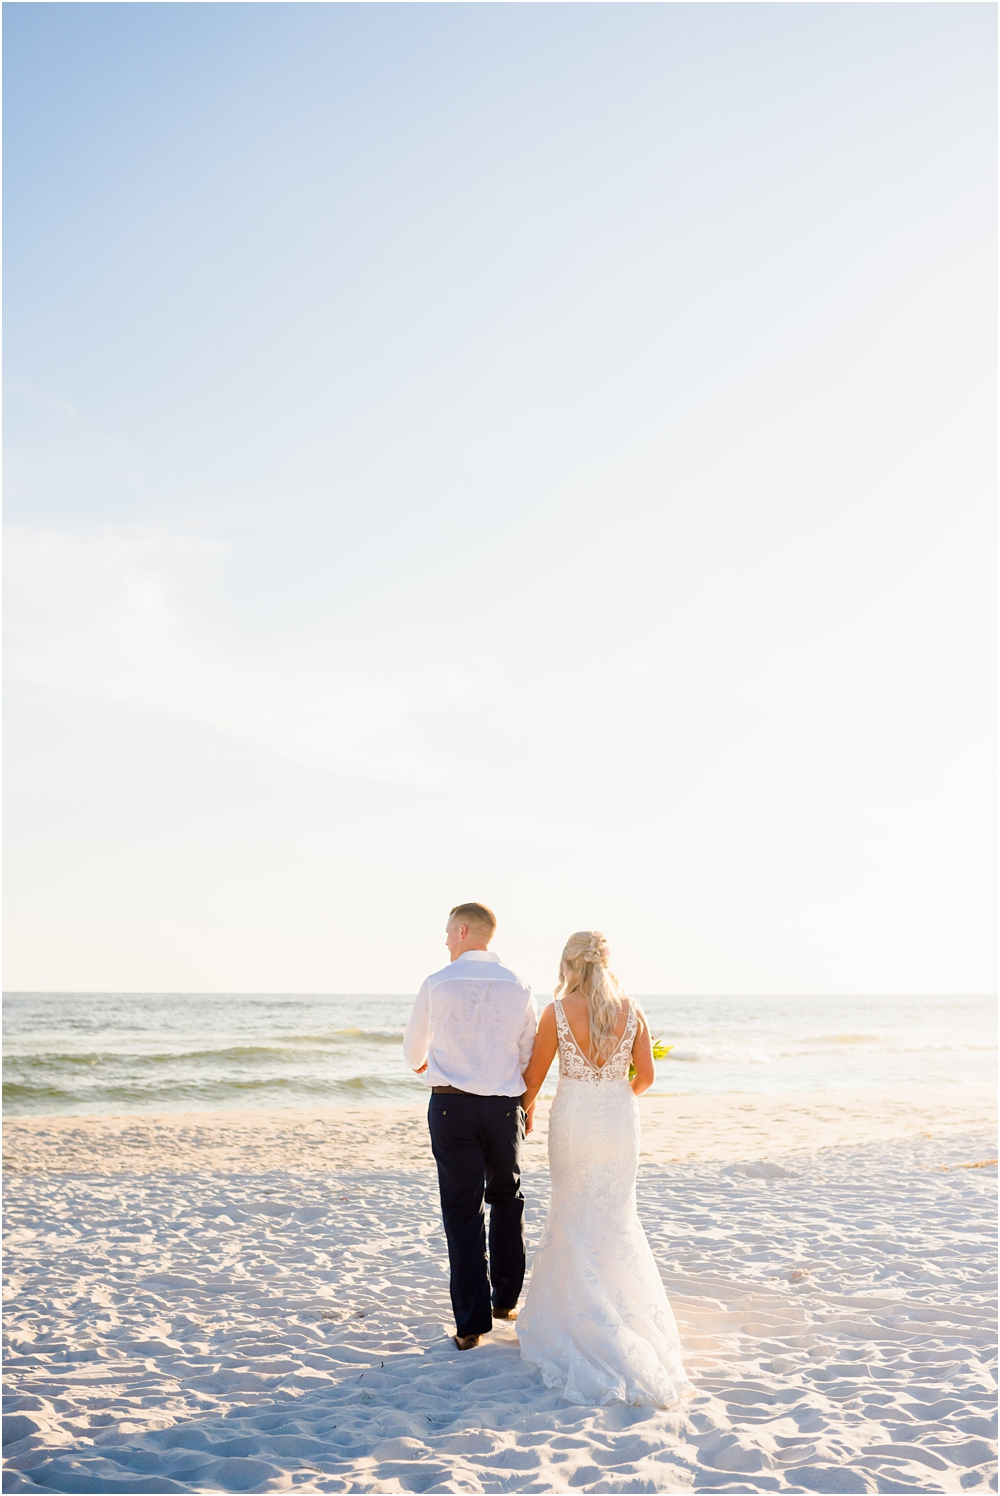 mcglothlin-wedding-kiersten-stevenson-photography-30a-panama-city-beach-dothan-tallahassee-(95-of-145).jpg